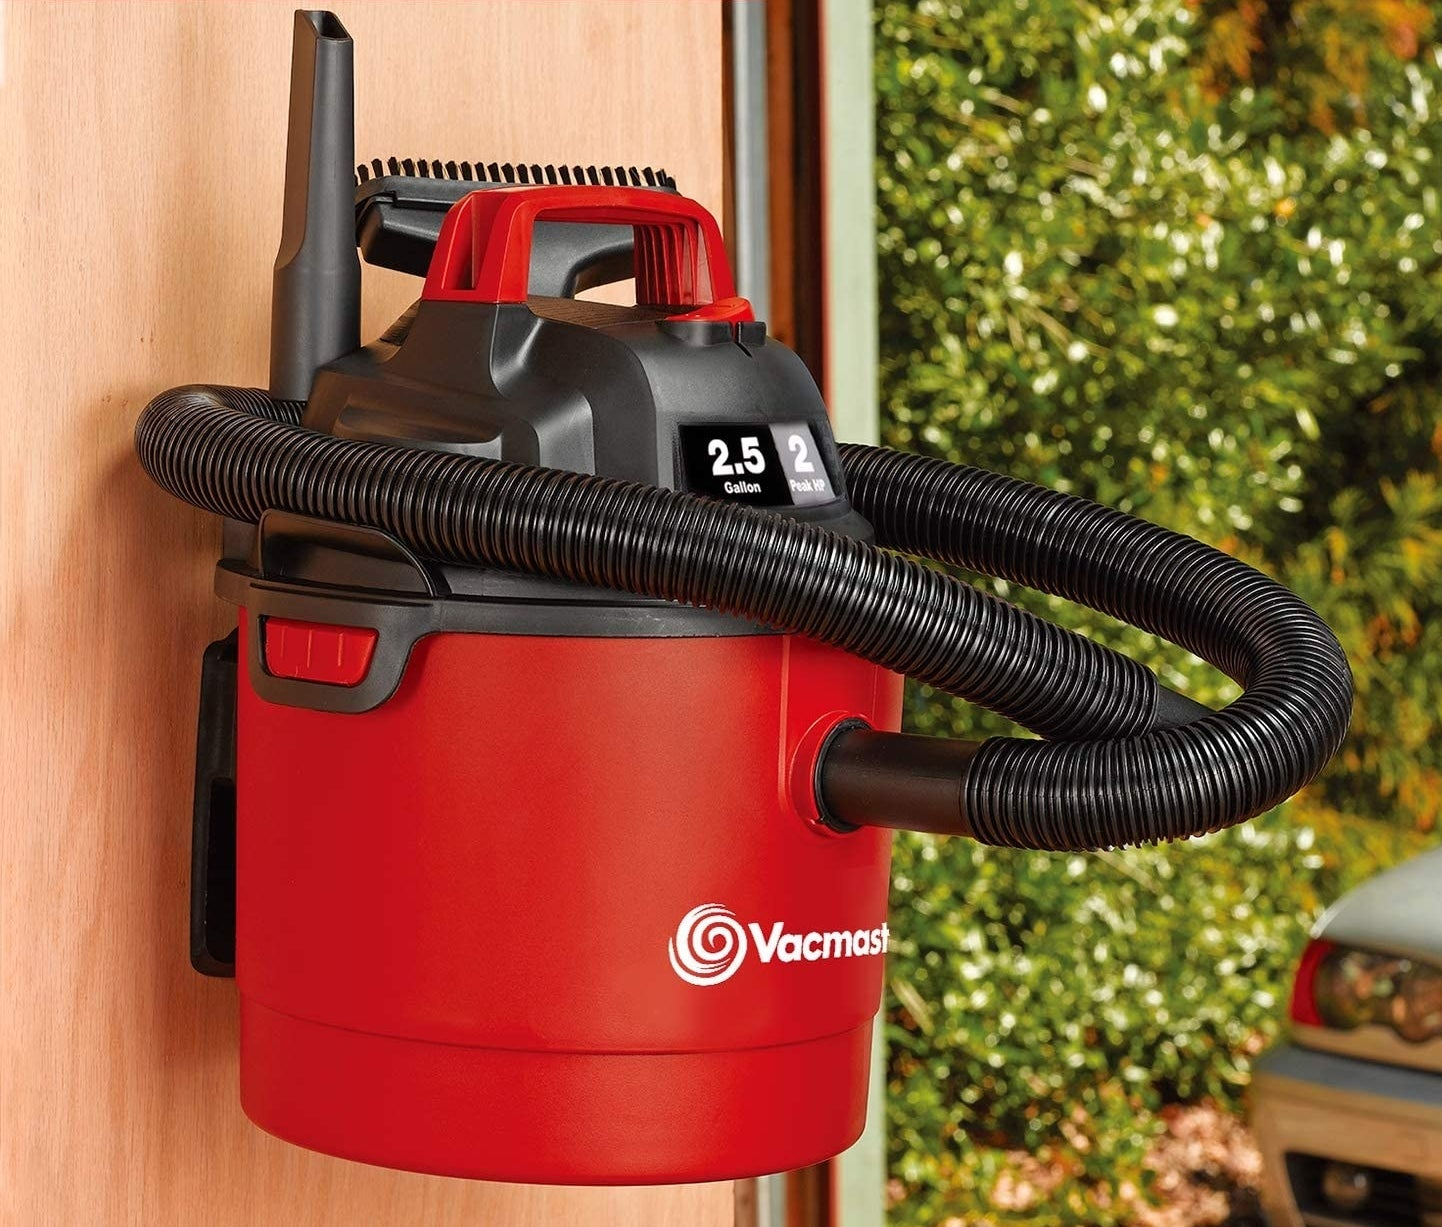 Lightweight red wet dry shop vac with black hose and wall mount